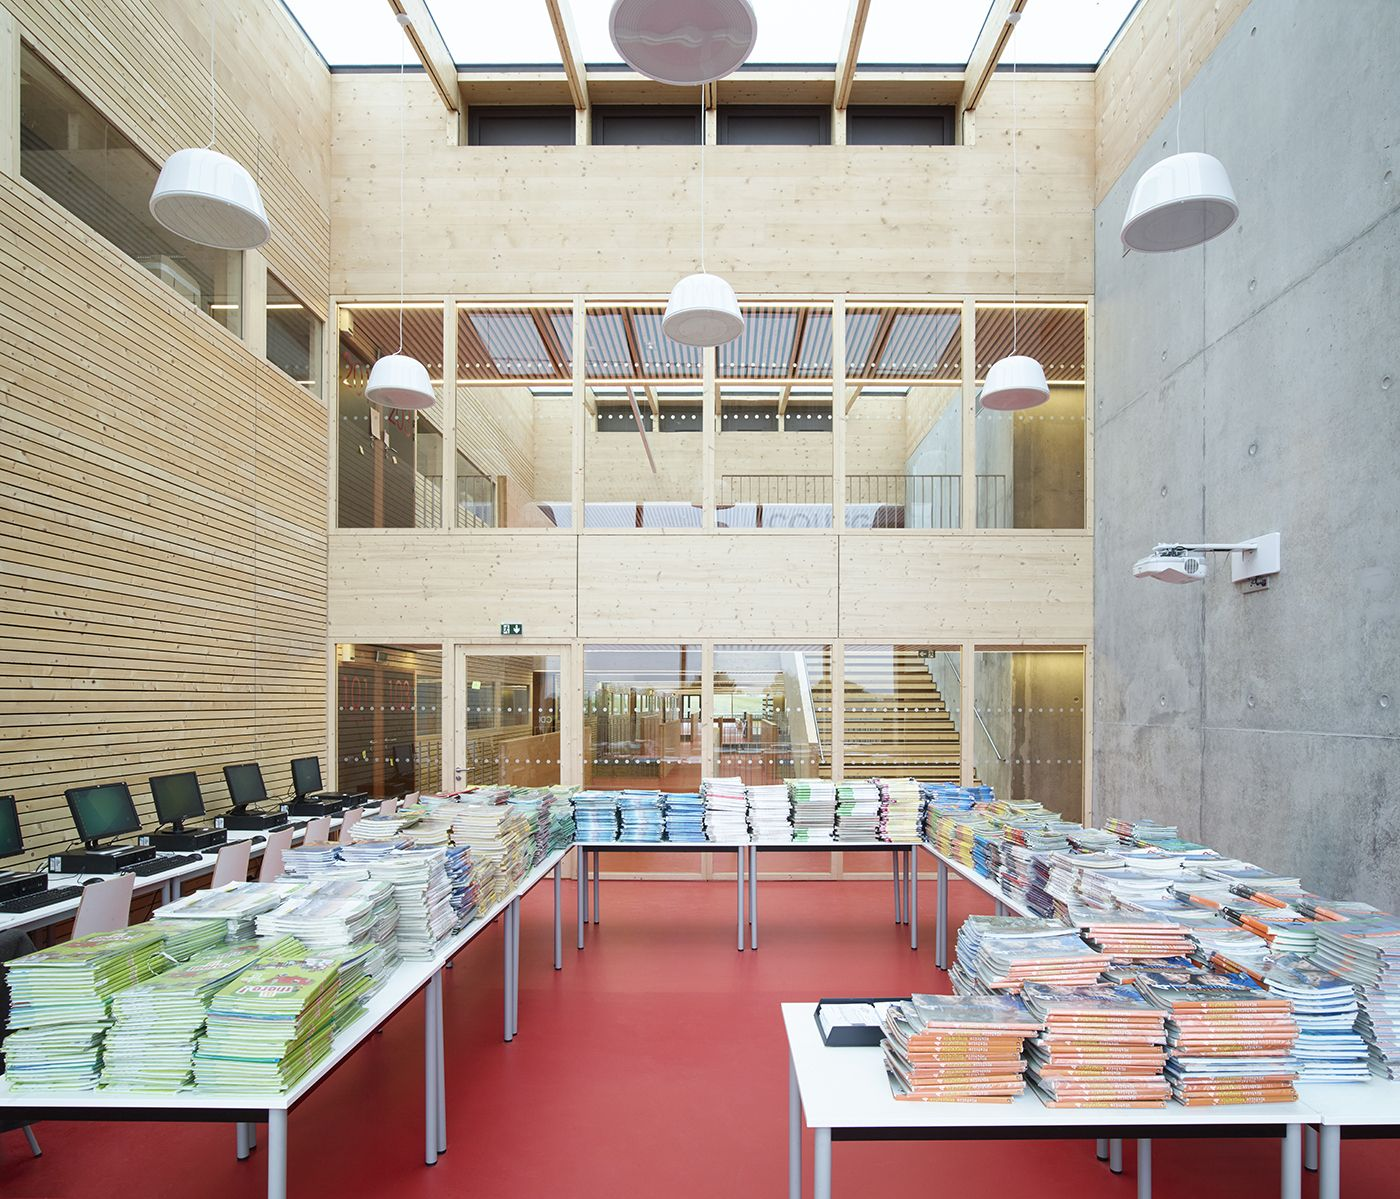 architecte_colas_durand_college_broons_bibliotheque